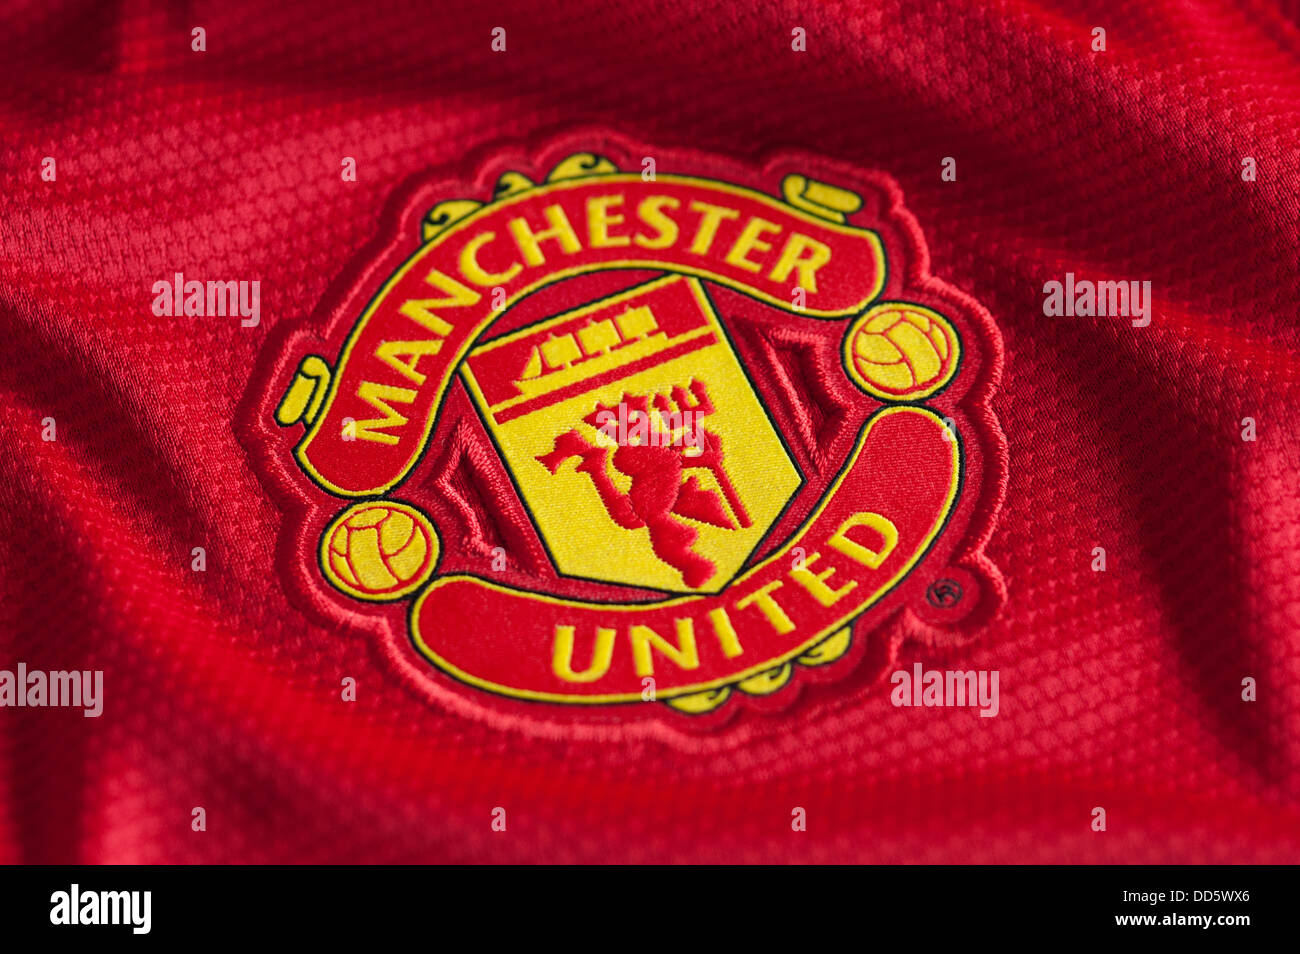 Man Utd Logo High Resolution Stock Photography And Images Alamy